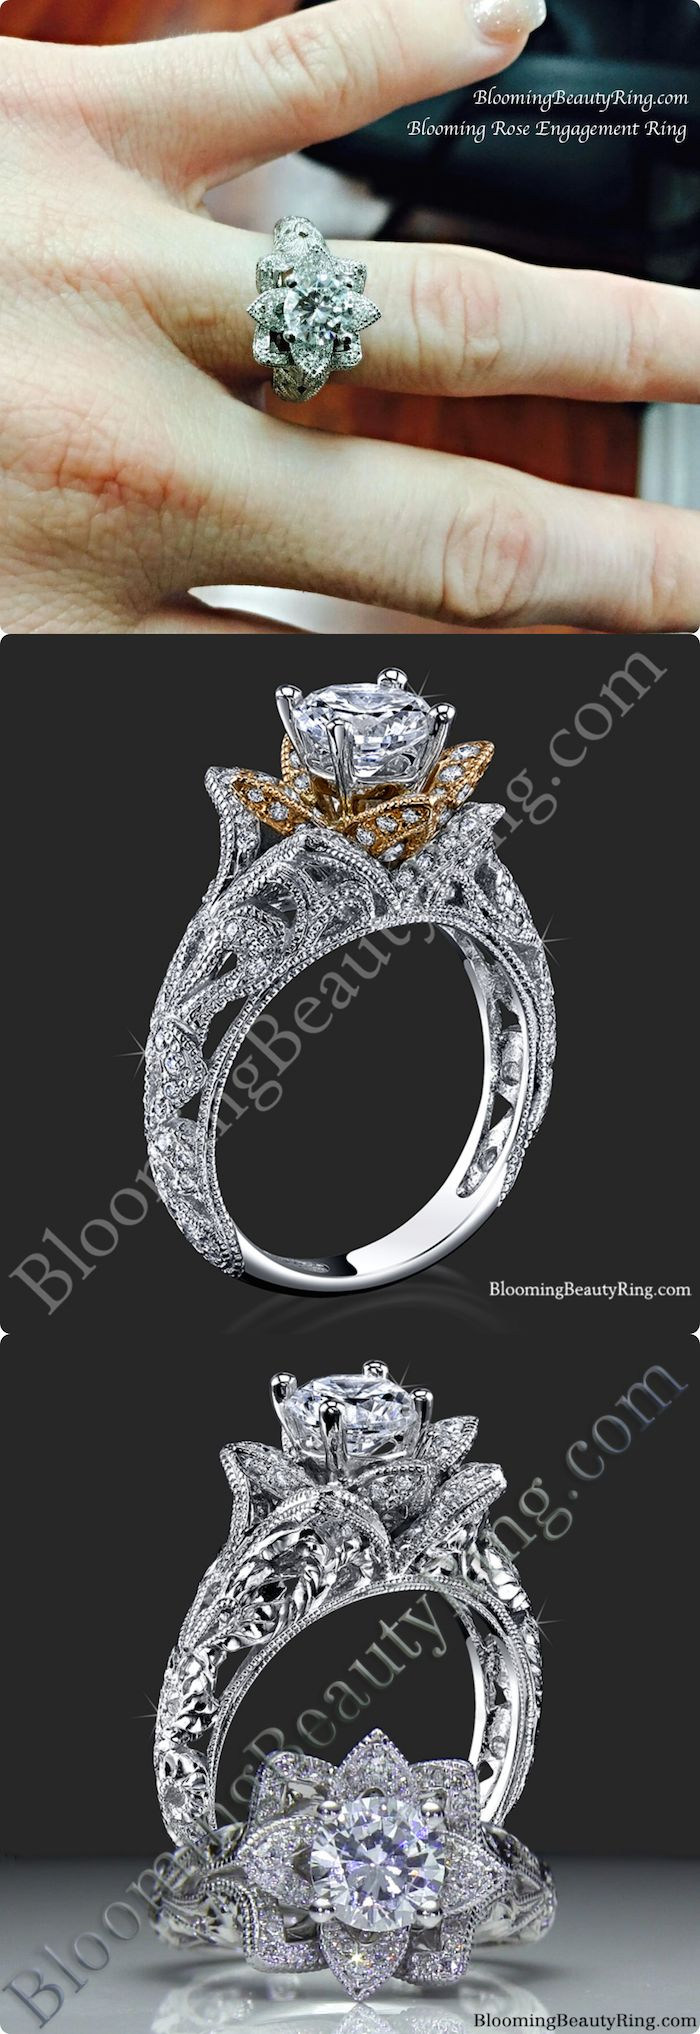 symbolizes flowers aimee full definition green gold trilogy ideas lotus etsy engagement mens shaped and rings winstone yellow moonstone fresh details what rose flower small elegant platinum of death emerald beautifulpetra white ring copy unalome like wedding diamond strength jewelry meaning lily size